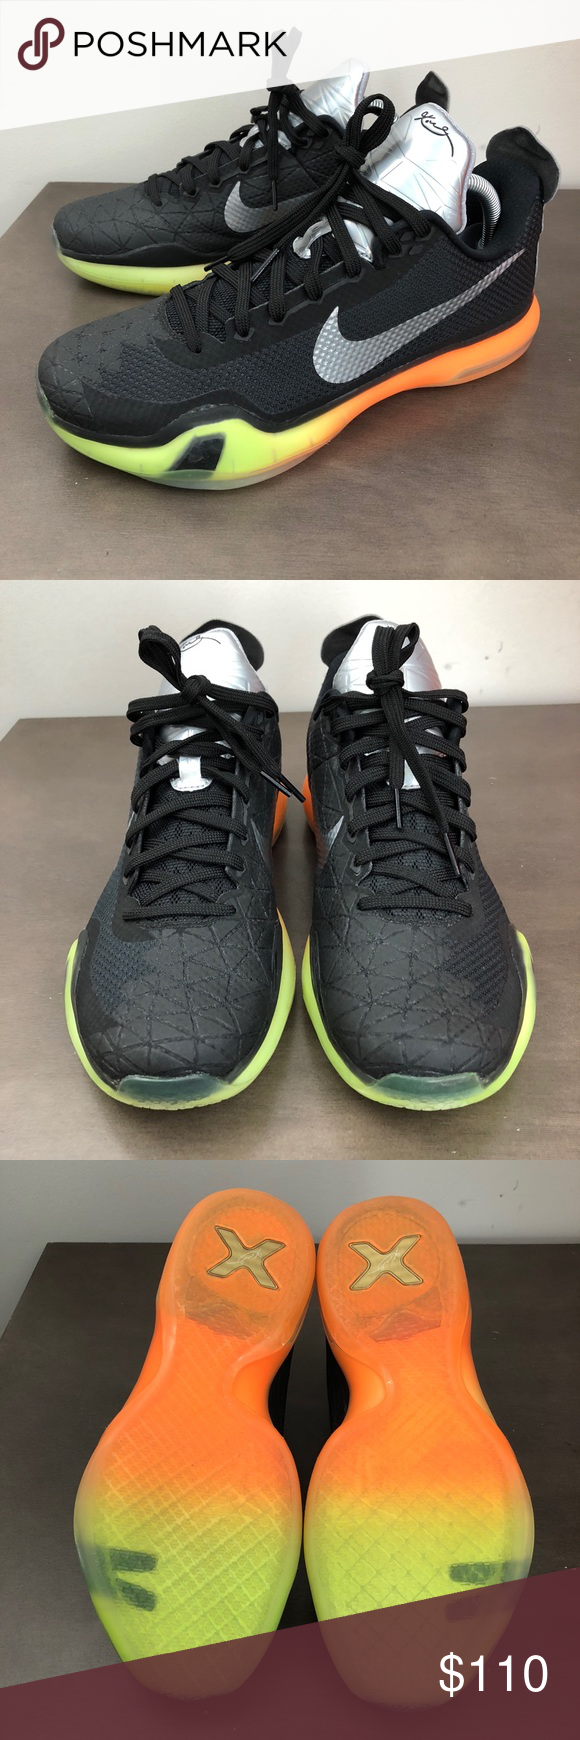 new concept 028f5 e7dcf Nike Kobe 10 X All Star AS 742546-097 Amazing condition like new!! Men s  size 8 medium Nike Kobe 10 X All Star AS 742546-097 Black Multi-Color Size  8 Men s ...